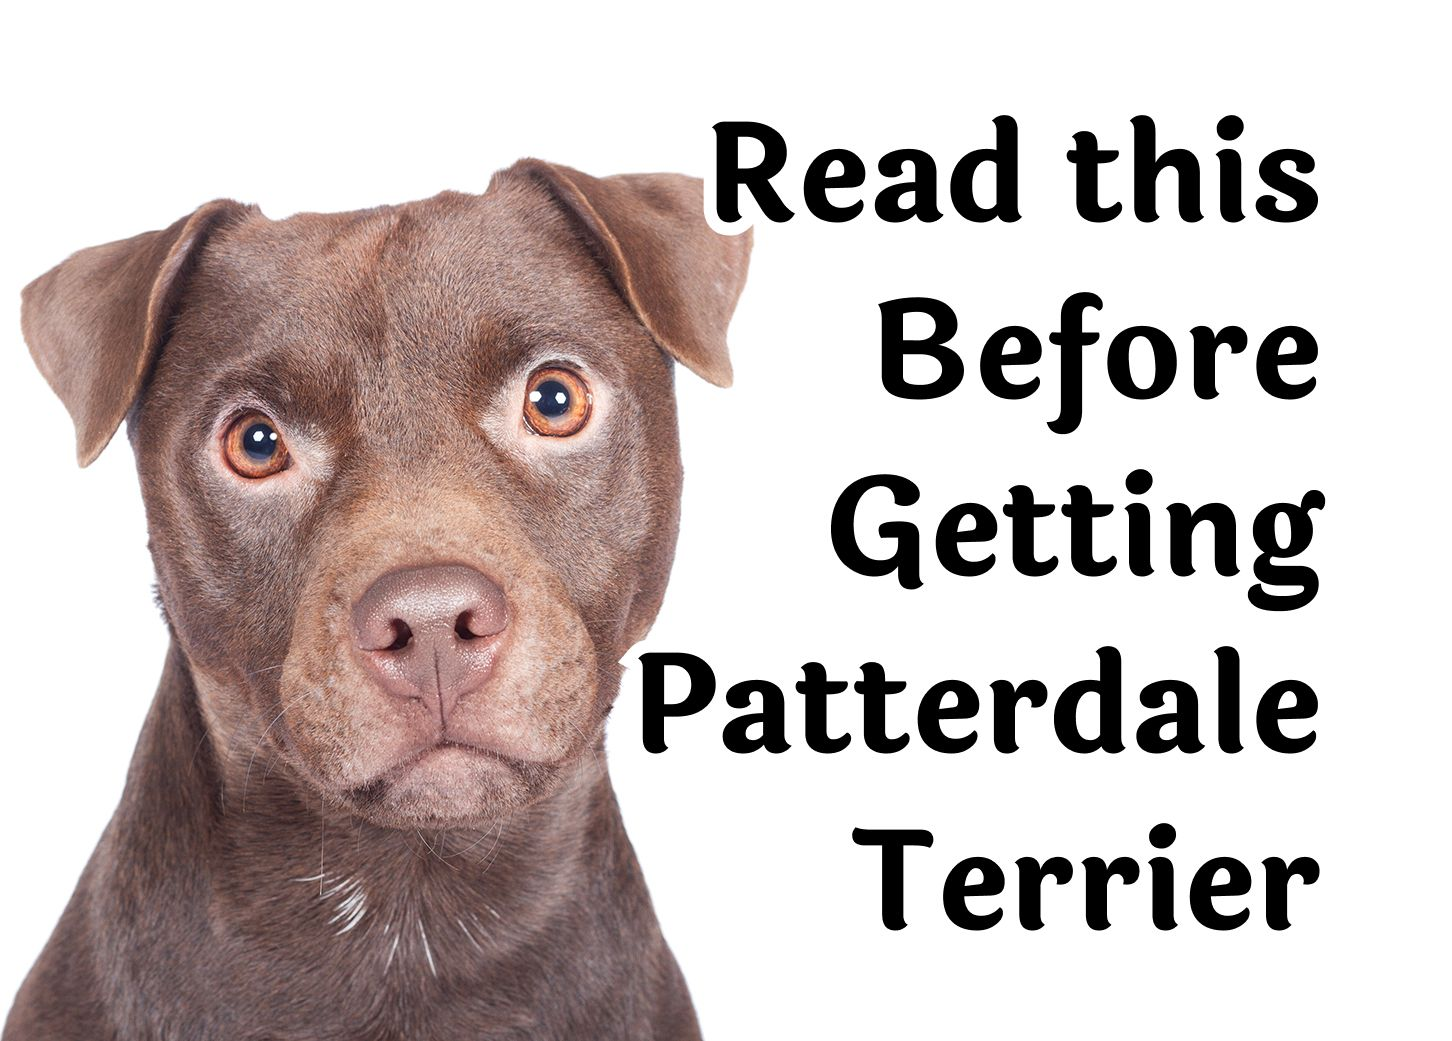 25 Questions You Need Answered Before Getting A Patterdale Terrier